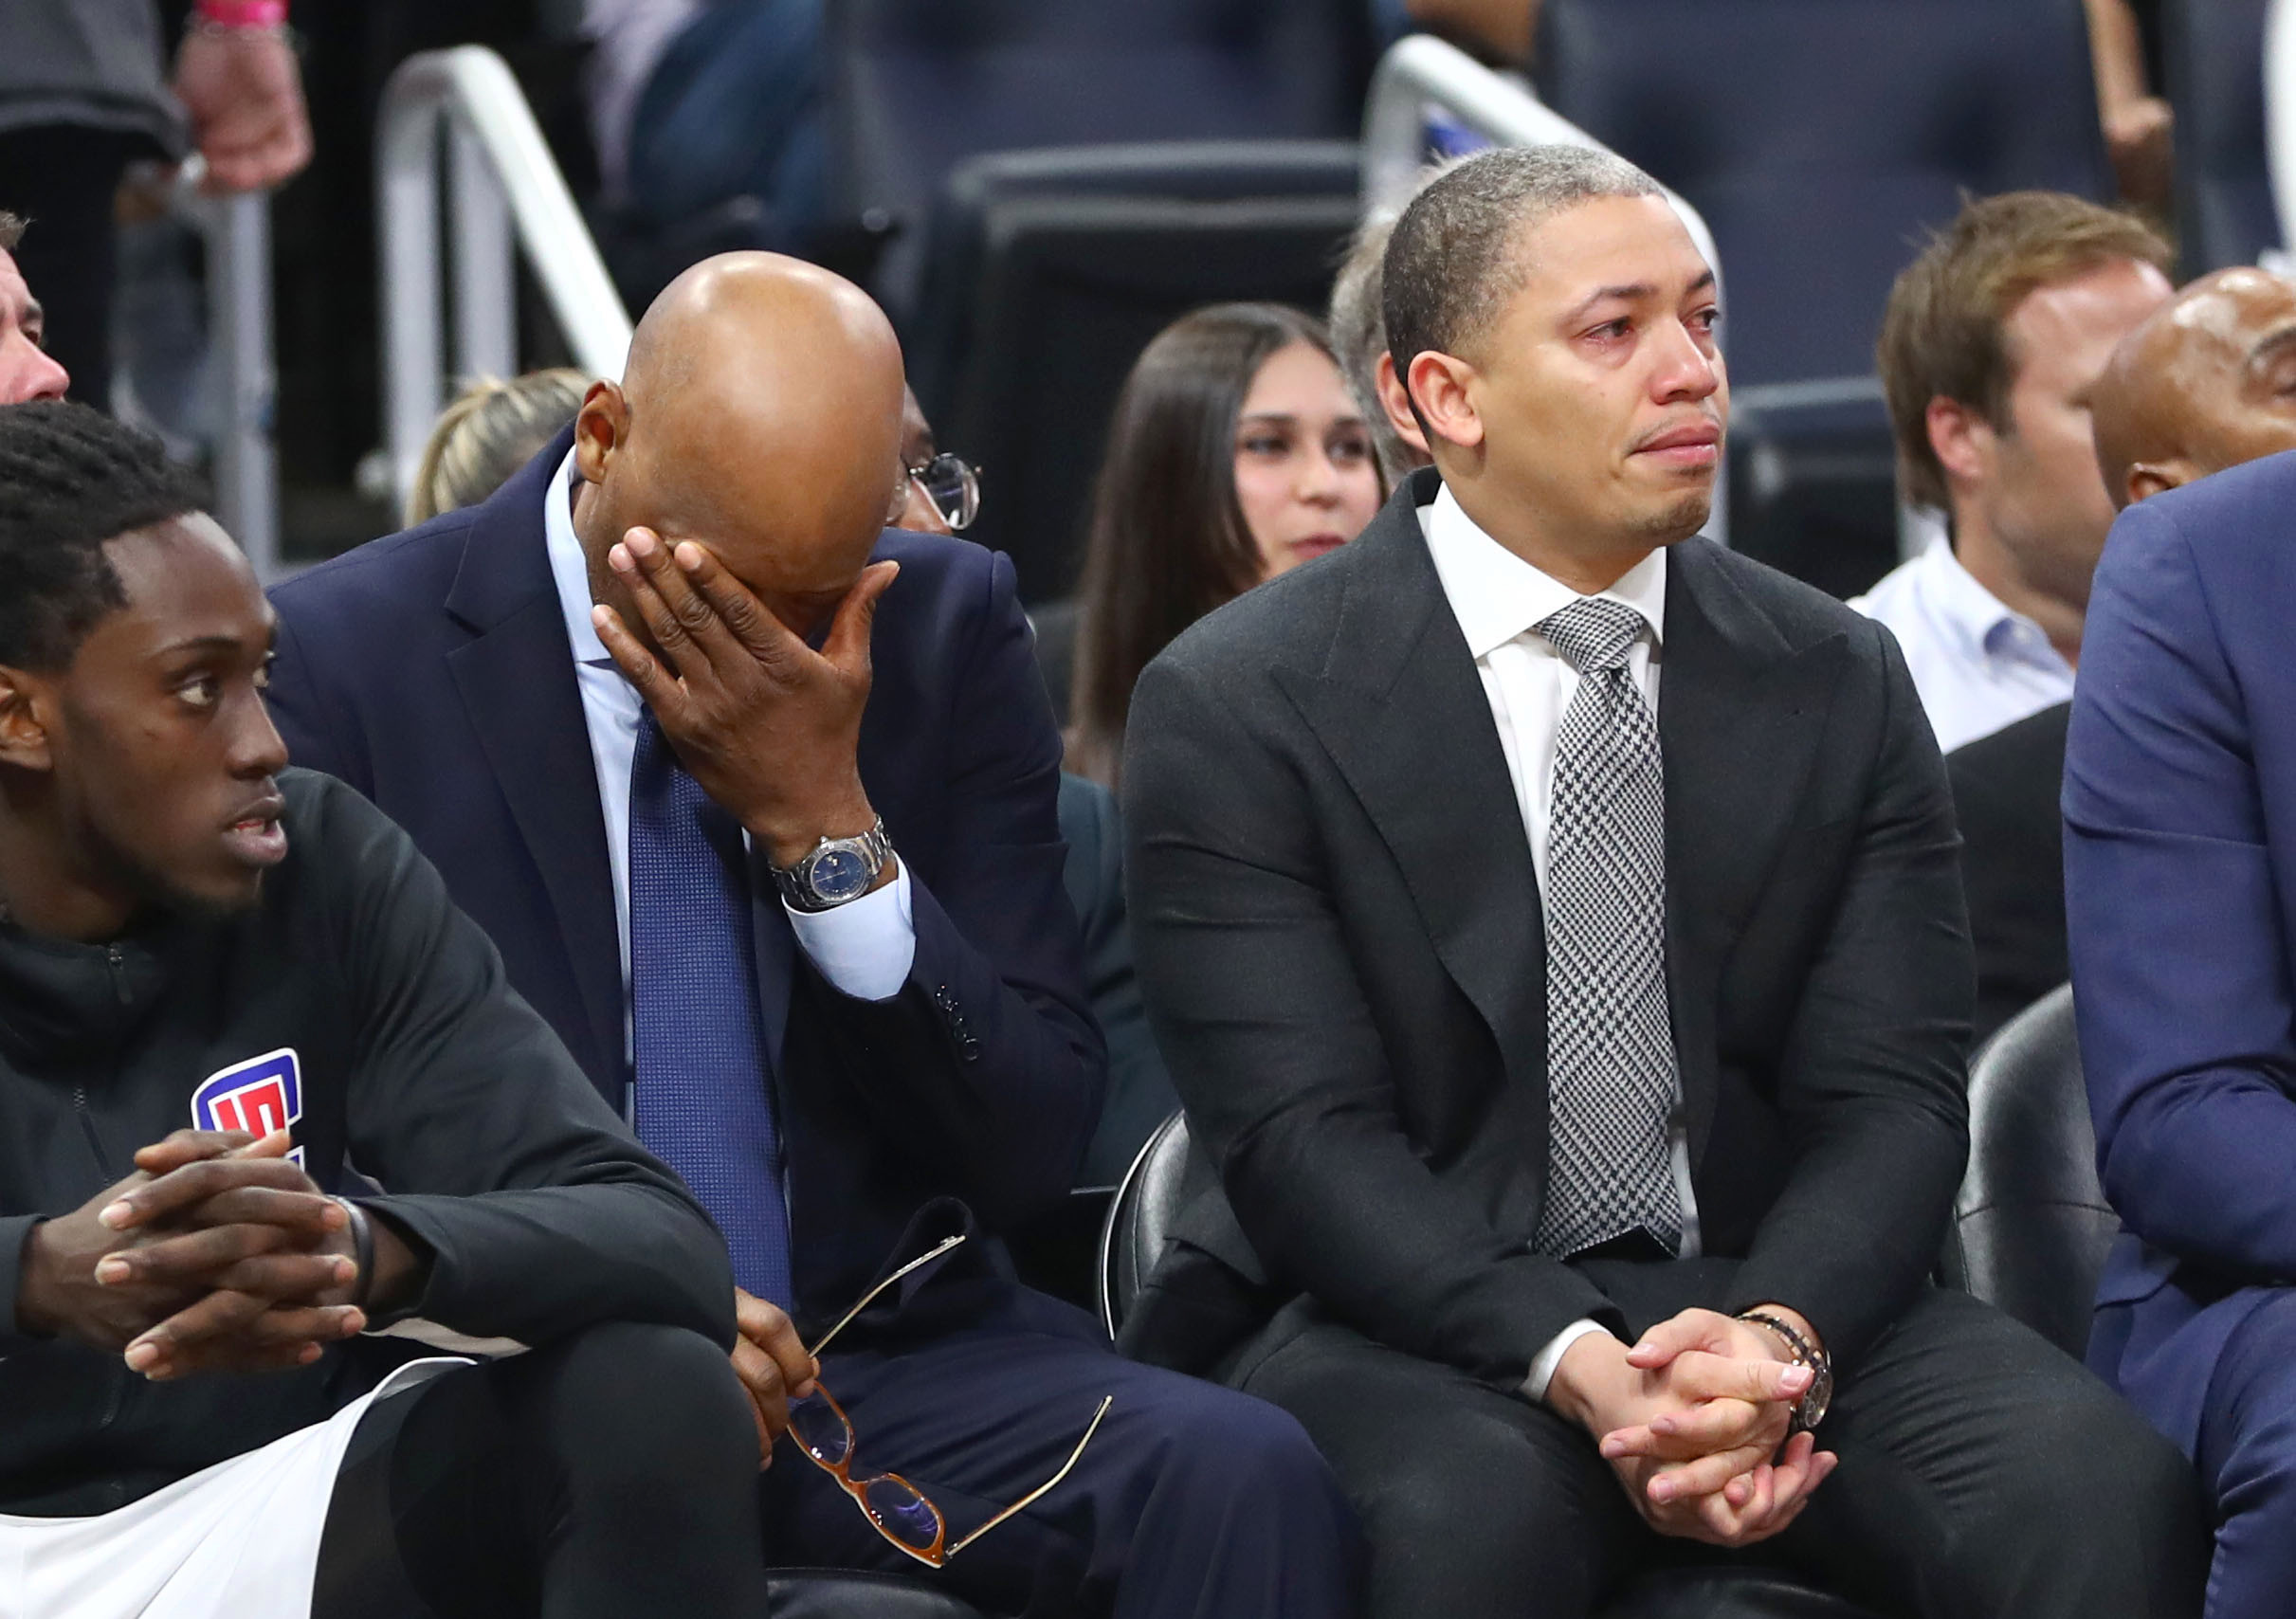 LA Clippers coach and Kobe's former teammate Tyronn Lue was visibly emotional over the news of his passing